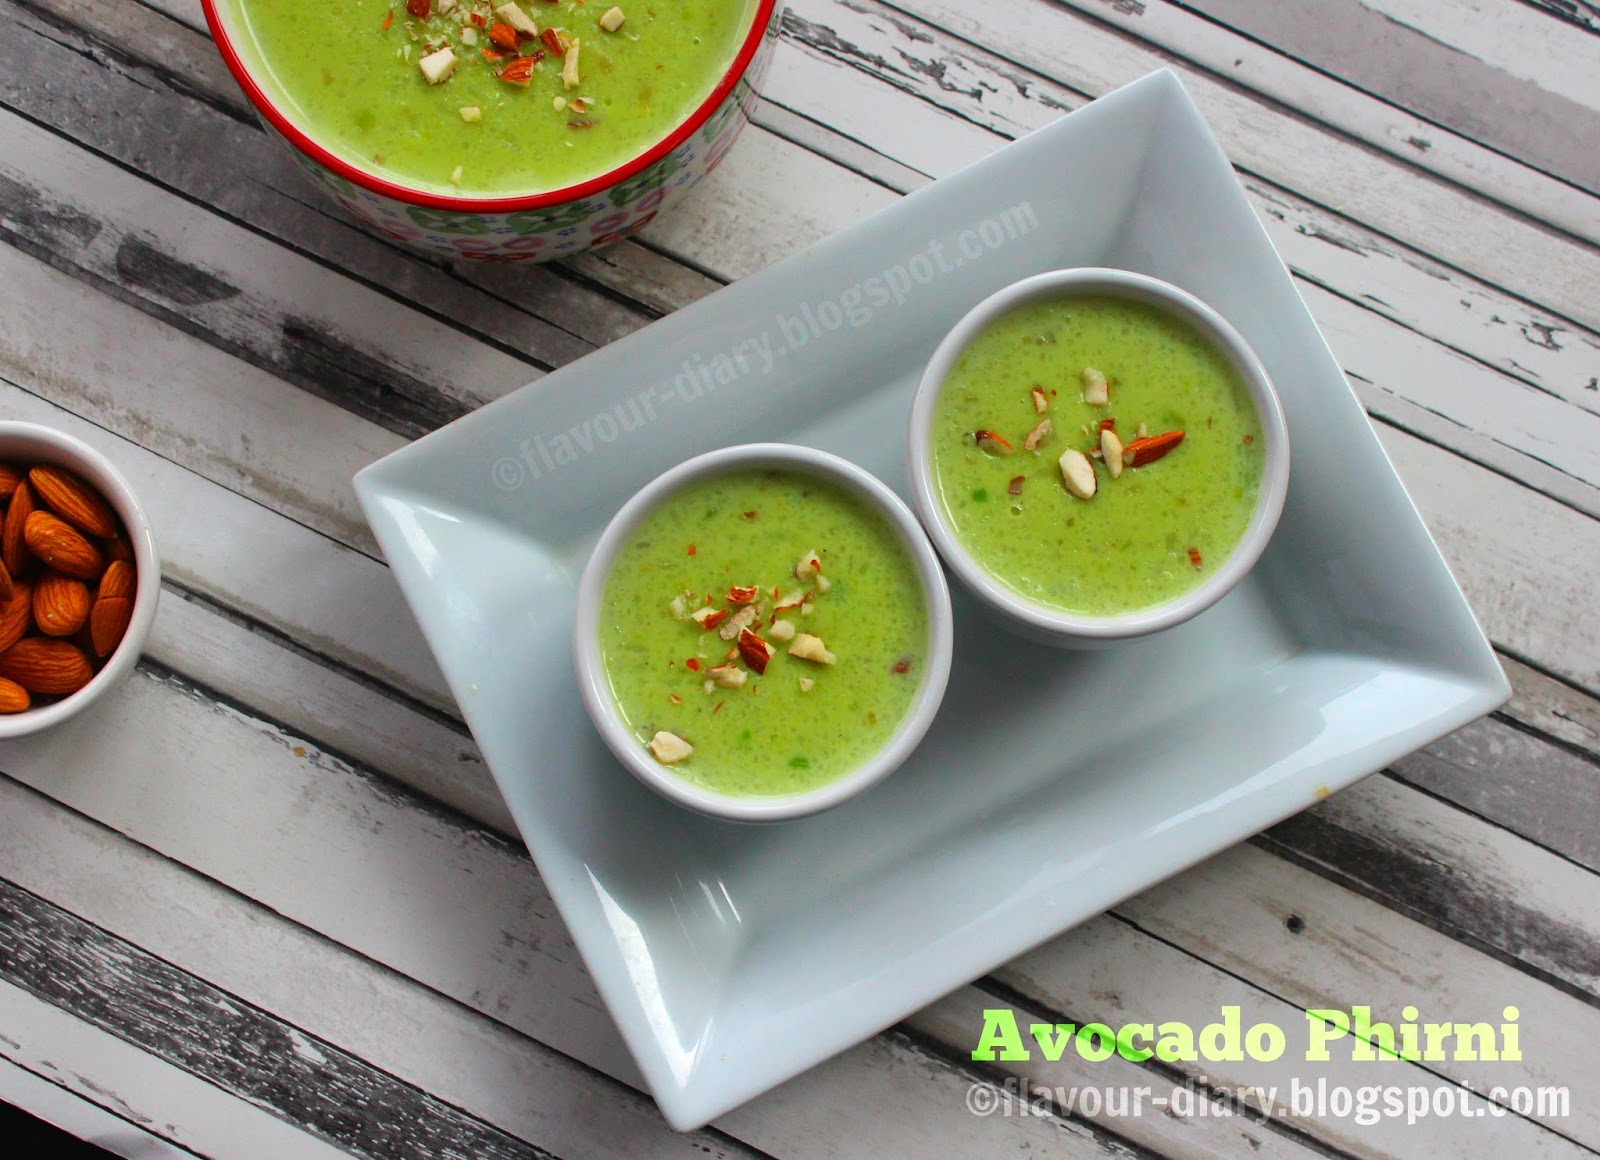 Avocado Phirni Recipe